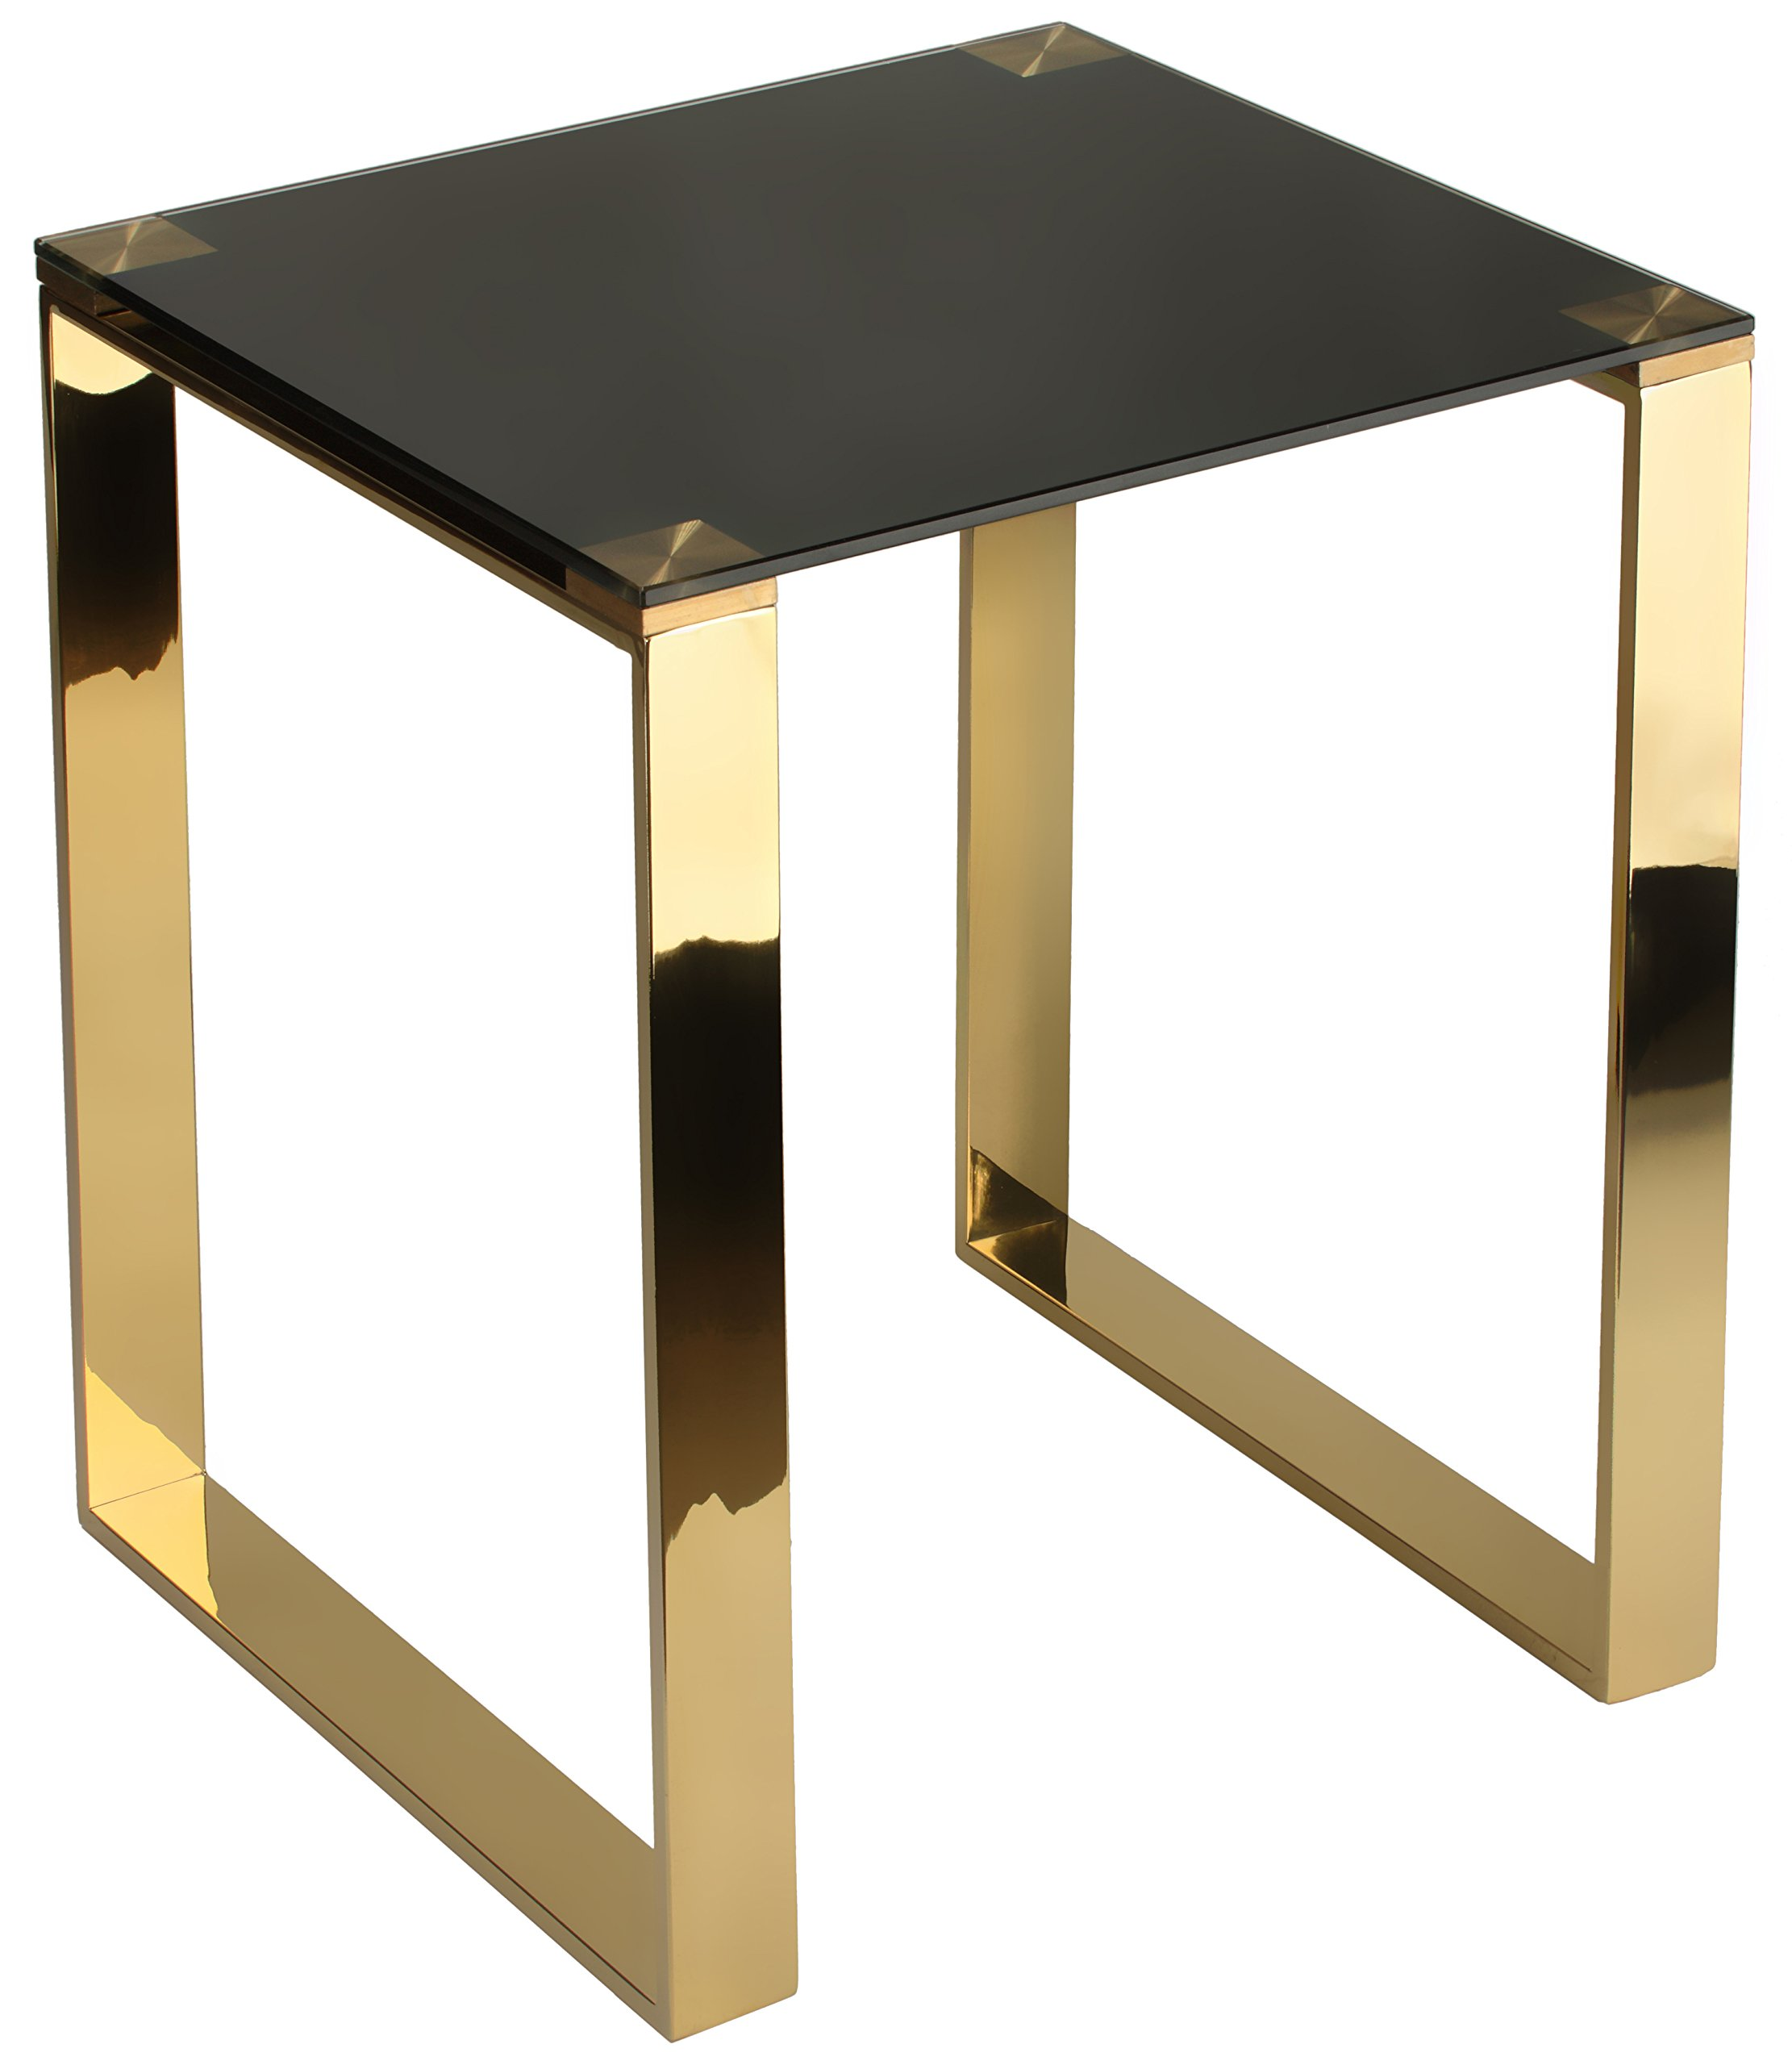 Cortesi Home Remini End Table, Gold Metal and Black Glass - Sleek modern design Black tempered glass Contemporary high gloss gold finish - living-room-furniture, living-room, end-tables - 71SJDKKoehL -